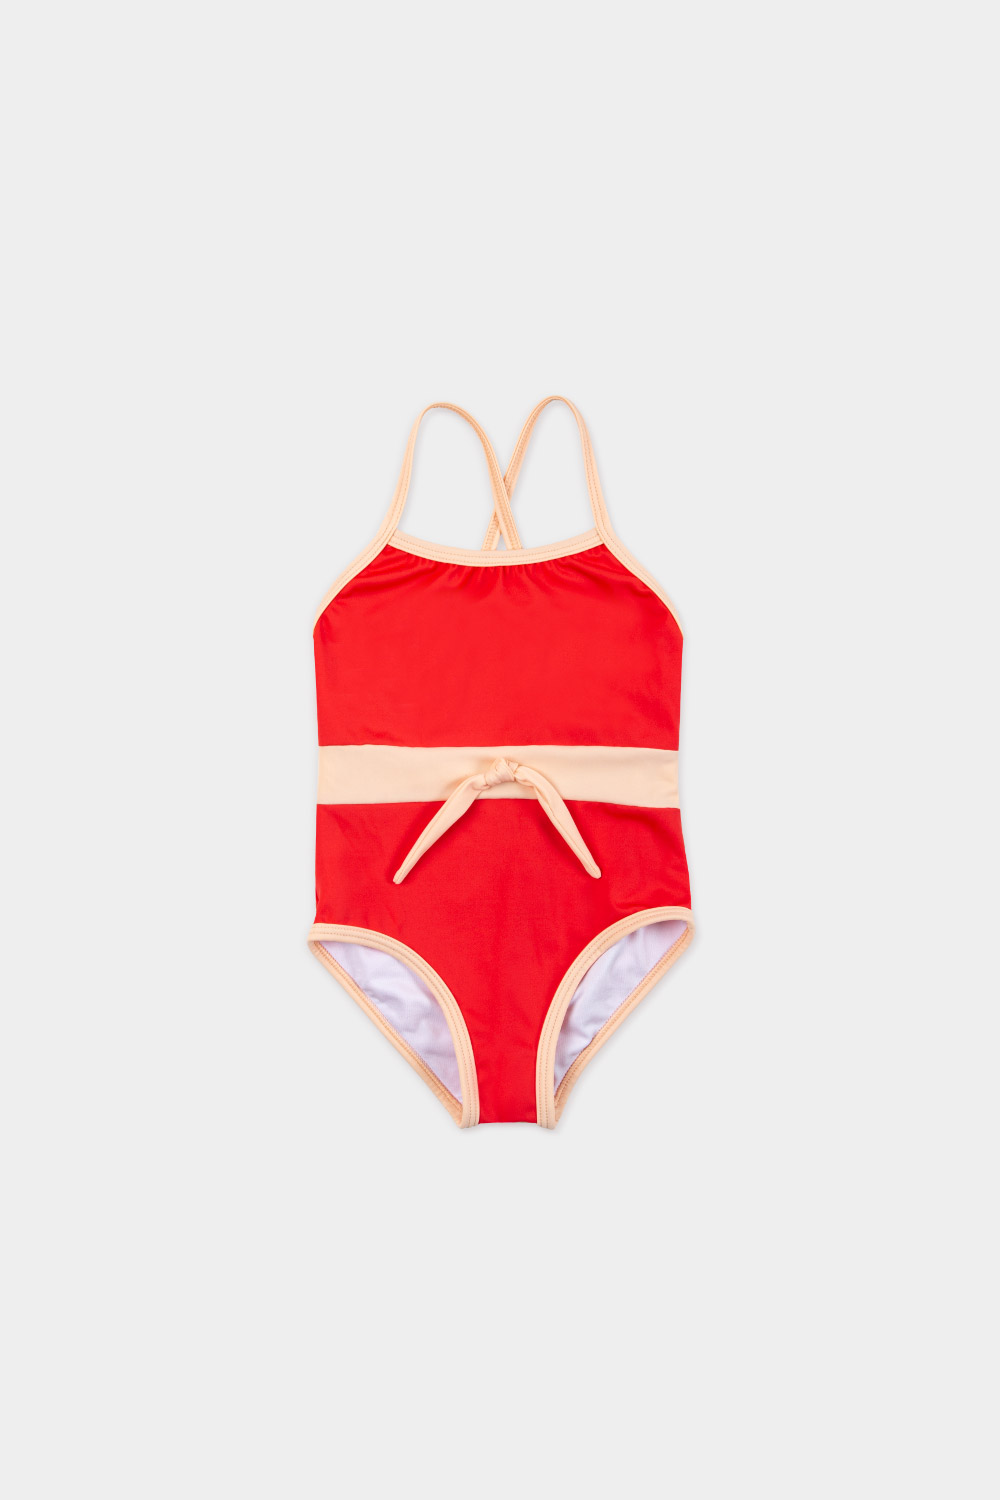 swimwear retrored one piece - product red - front